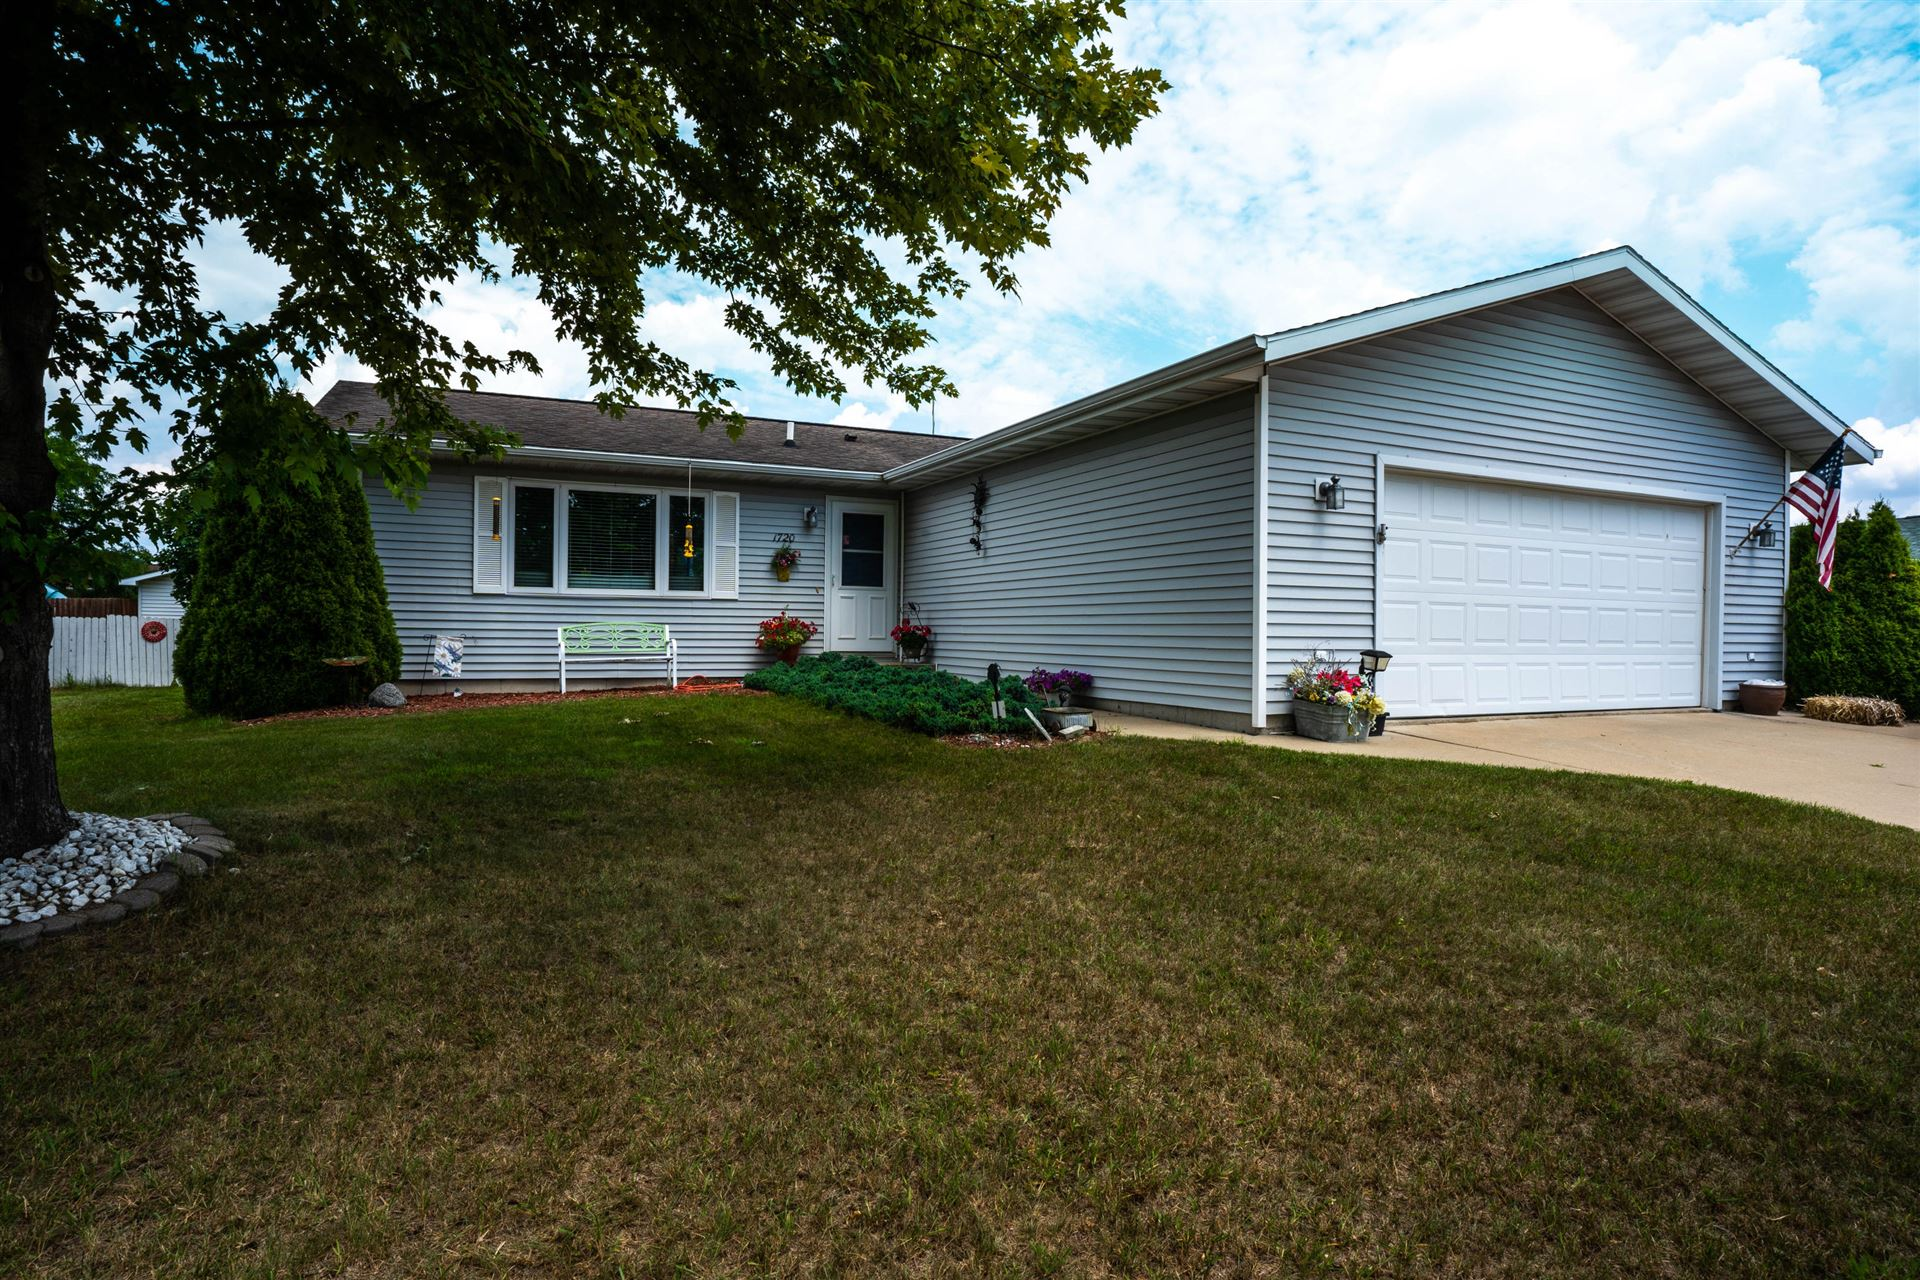 1720 CLEARVIEW DR, Sparta, WI 54656 - MLS#: 1697588